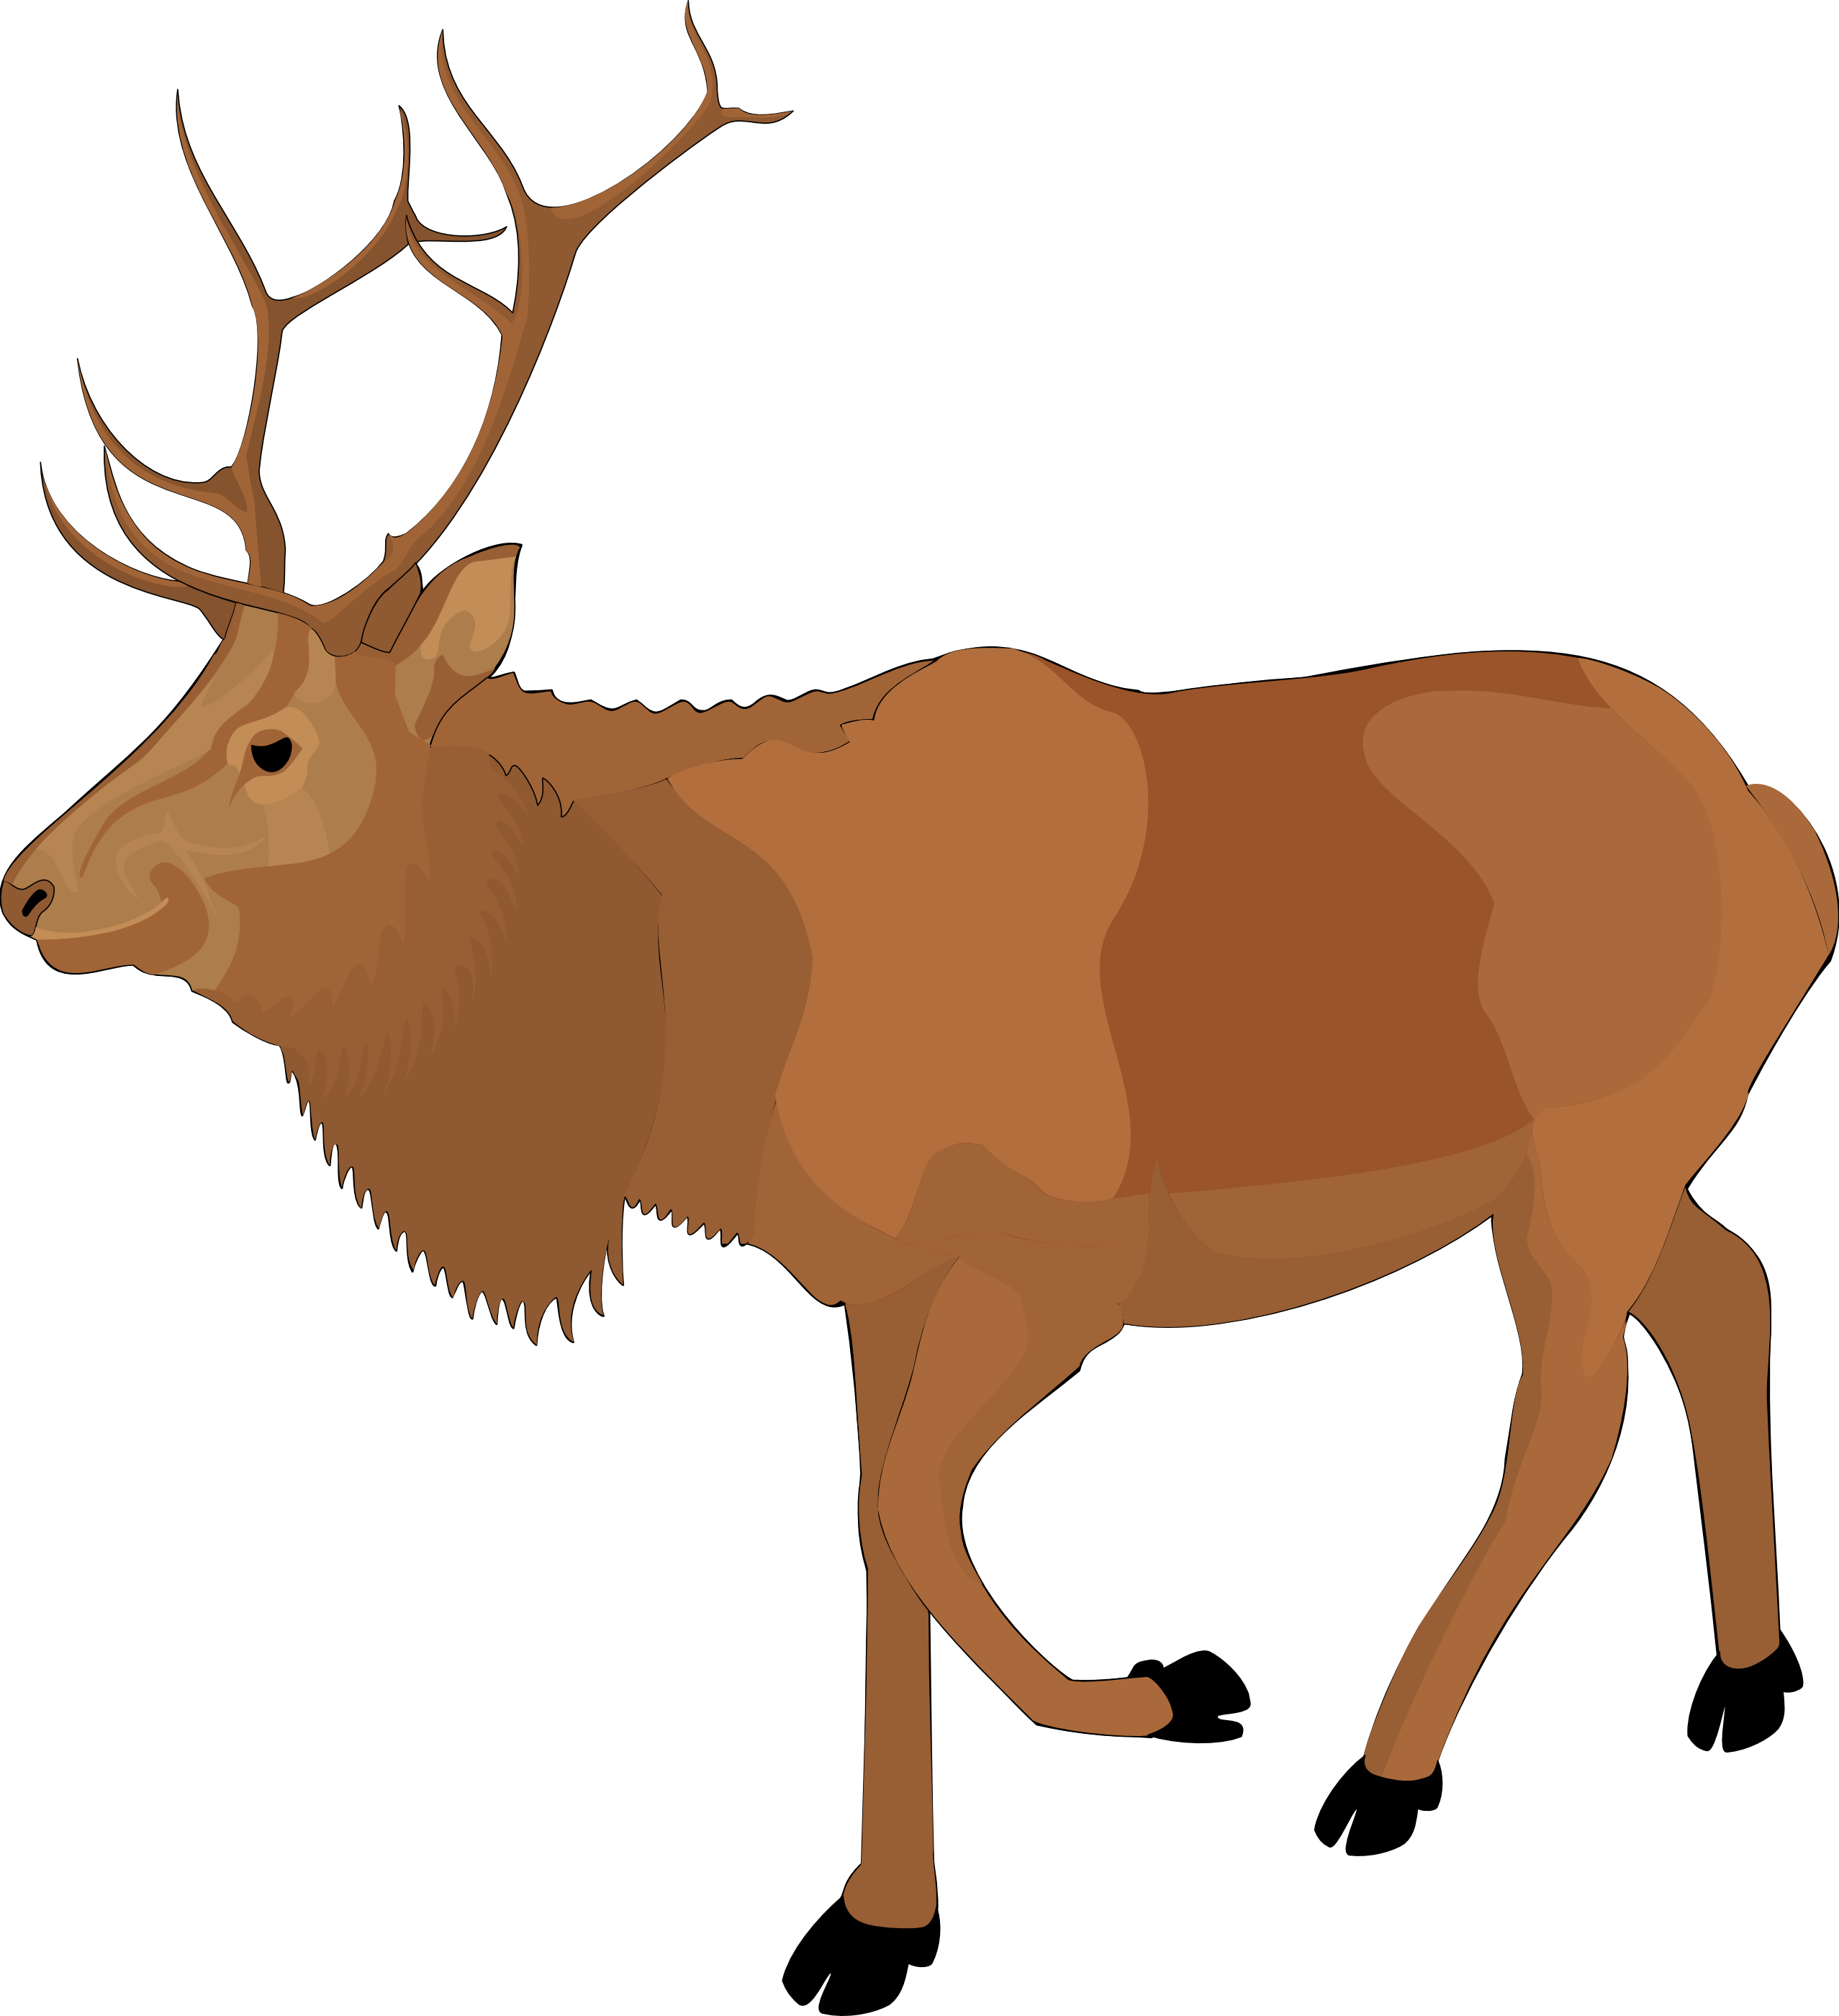 Brown reindeer pencil and. Moose clipart transparent background